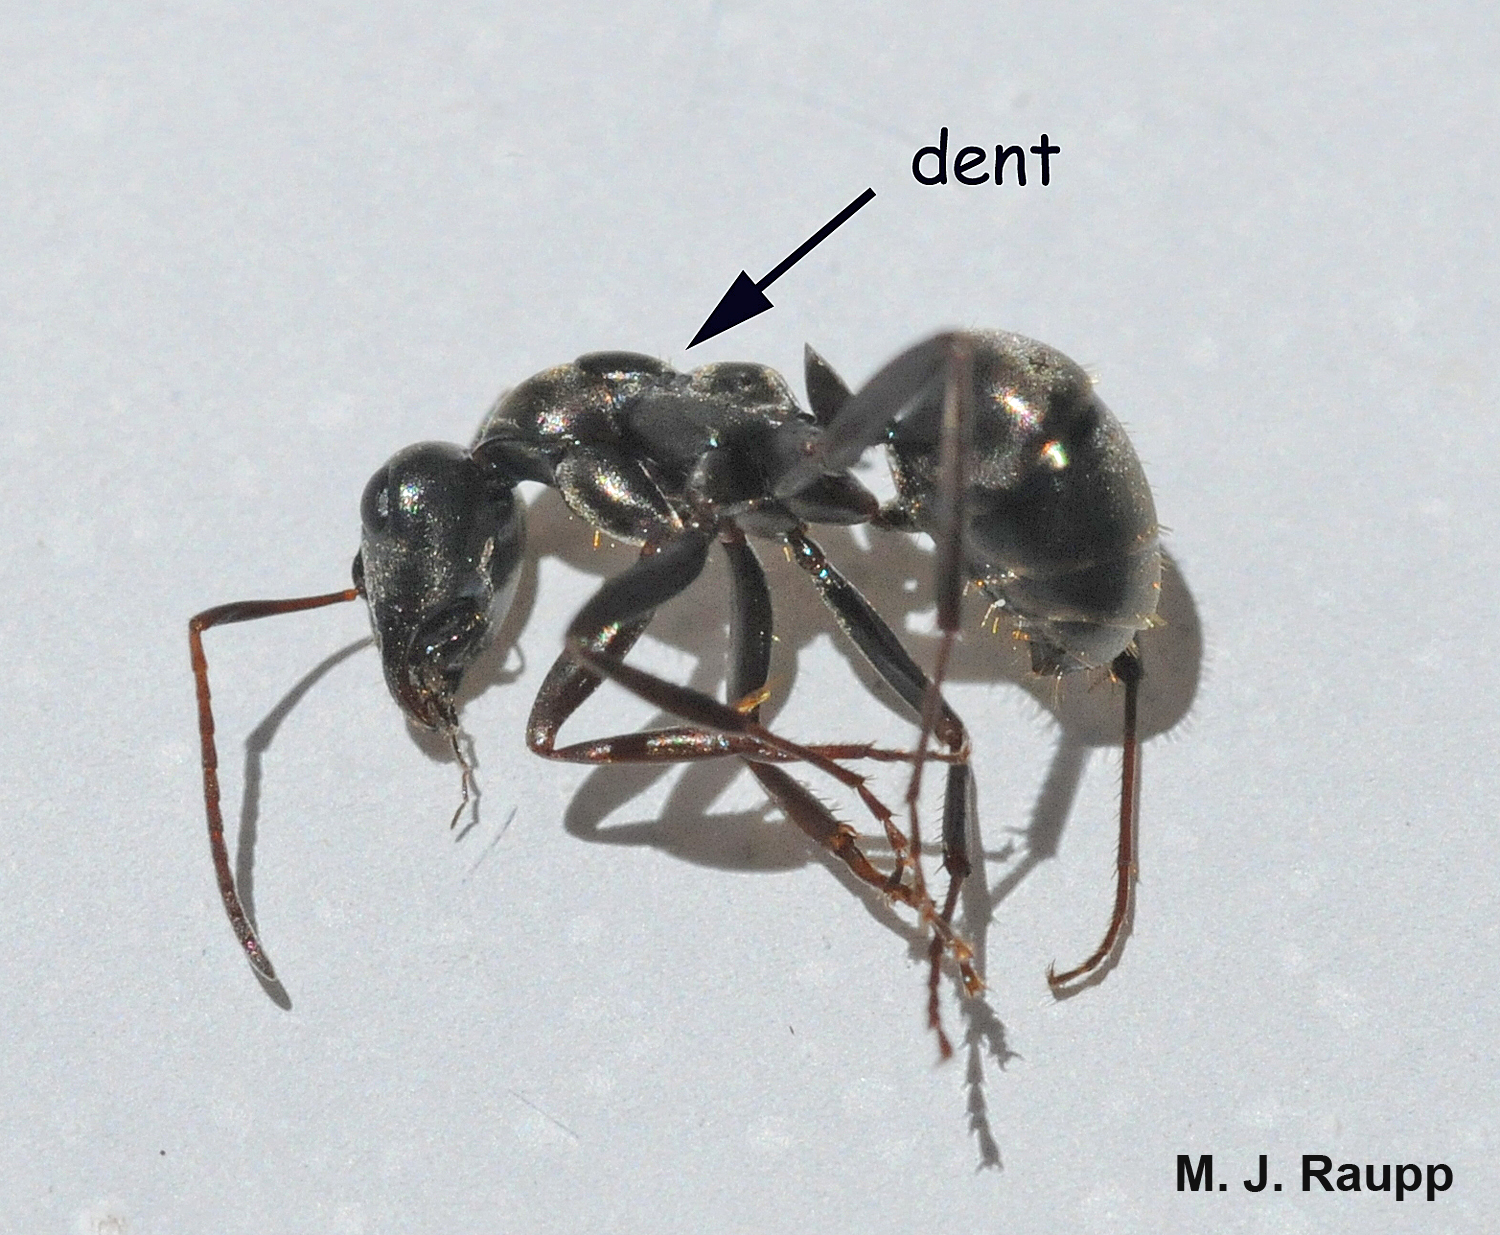 Field ants are differentiated from carpenter ants bya distinct dent in the center of their thorax.